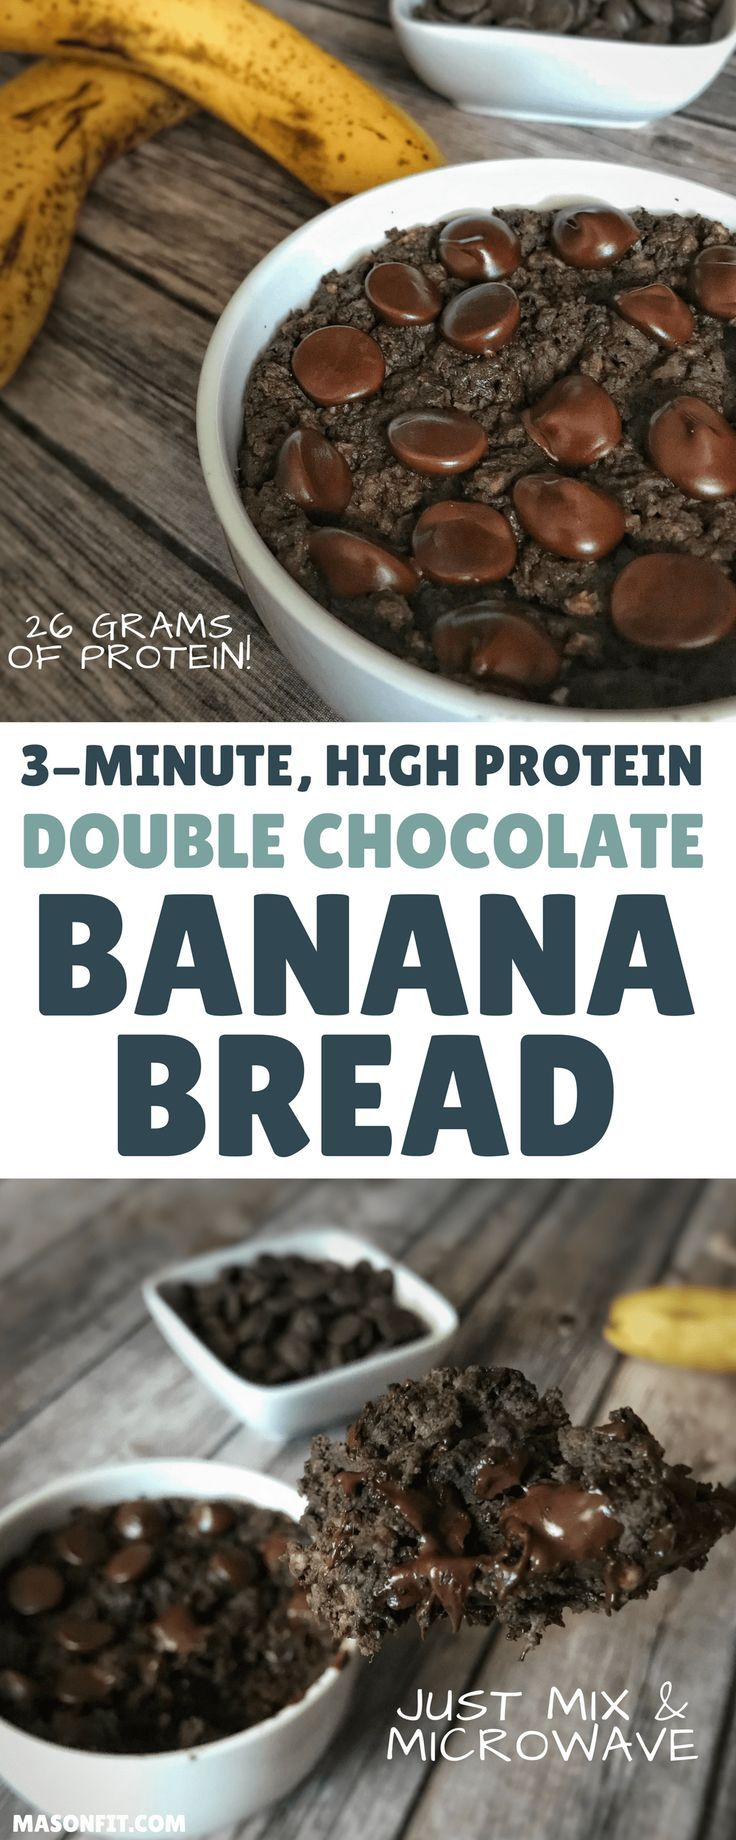 This high protein banana bread recipe puts a double chocolate spin on classic banana bread and packs 26 grams of protein into one microwaveable mug cake-style banana bread loaf. With a short ingredient list and under 2-minute cook time, this is perfect fo